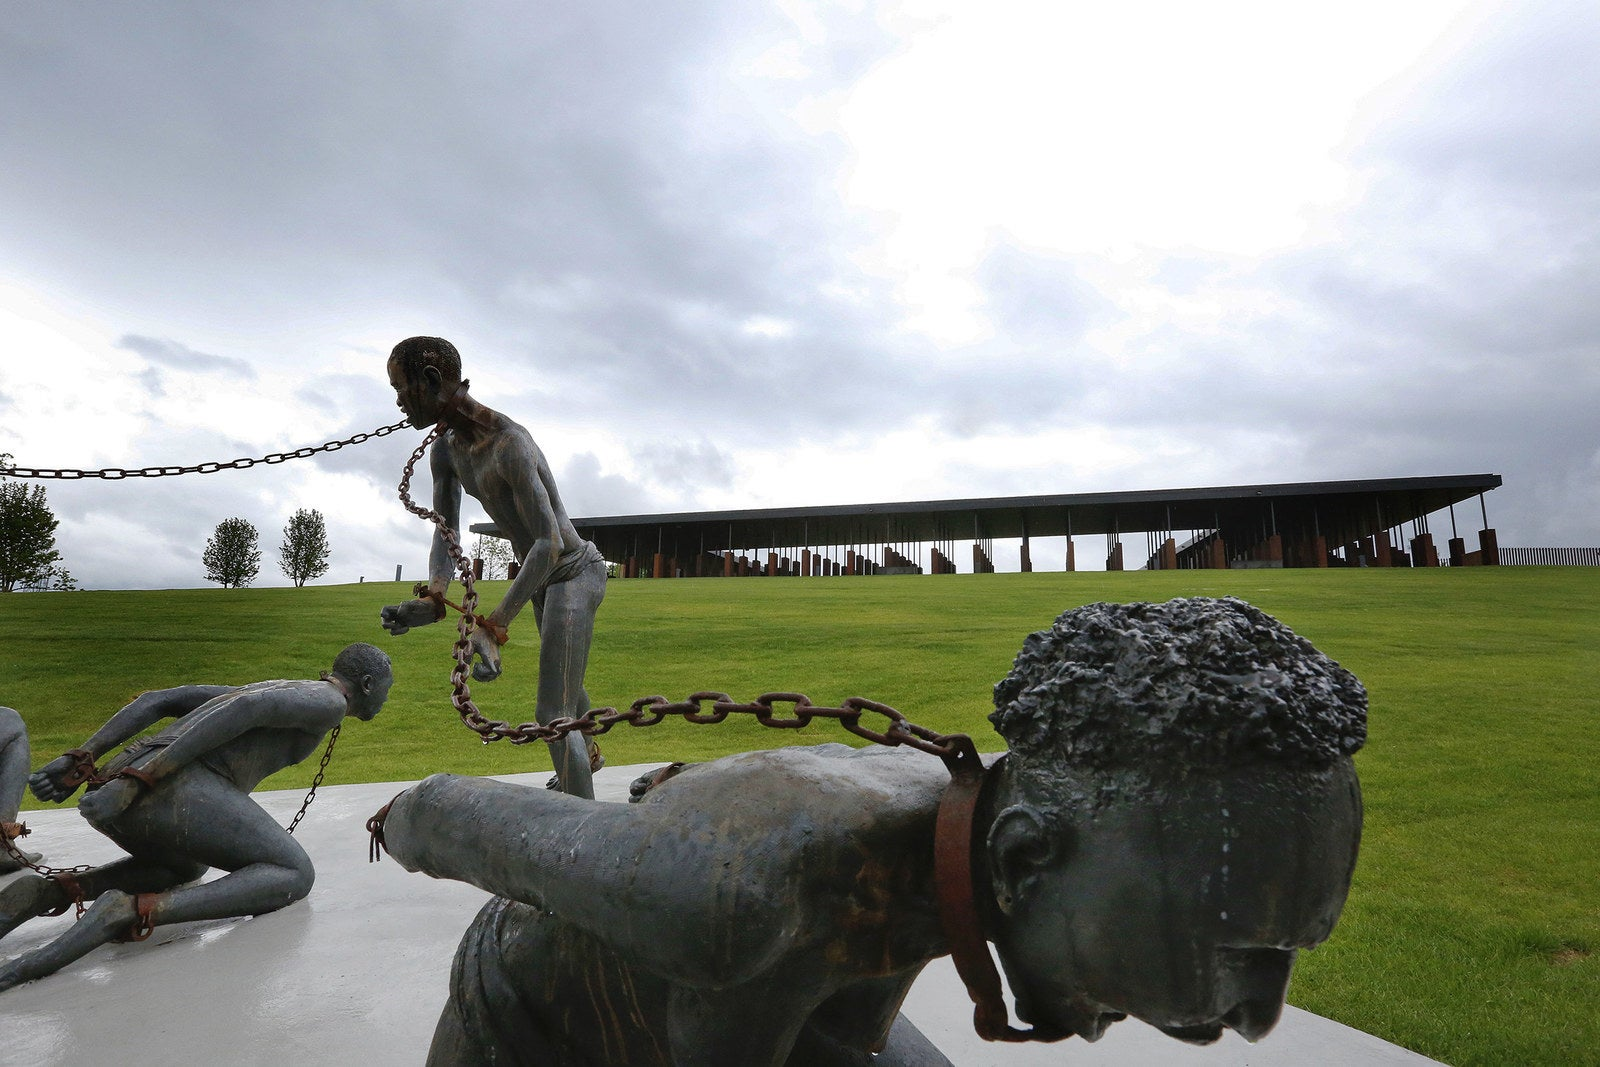 A sculpture by artist Kwame Akoto-Bamfo depicts people enslaved and suffering.